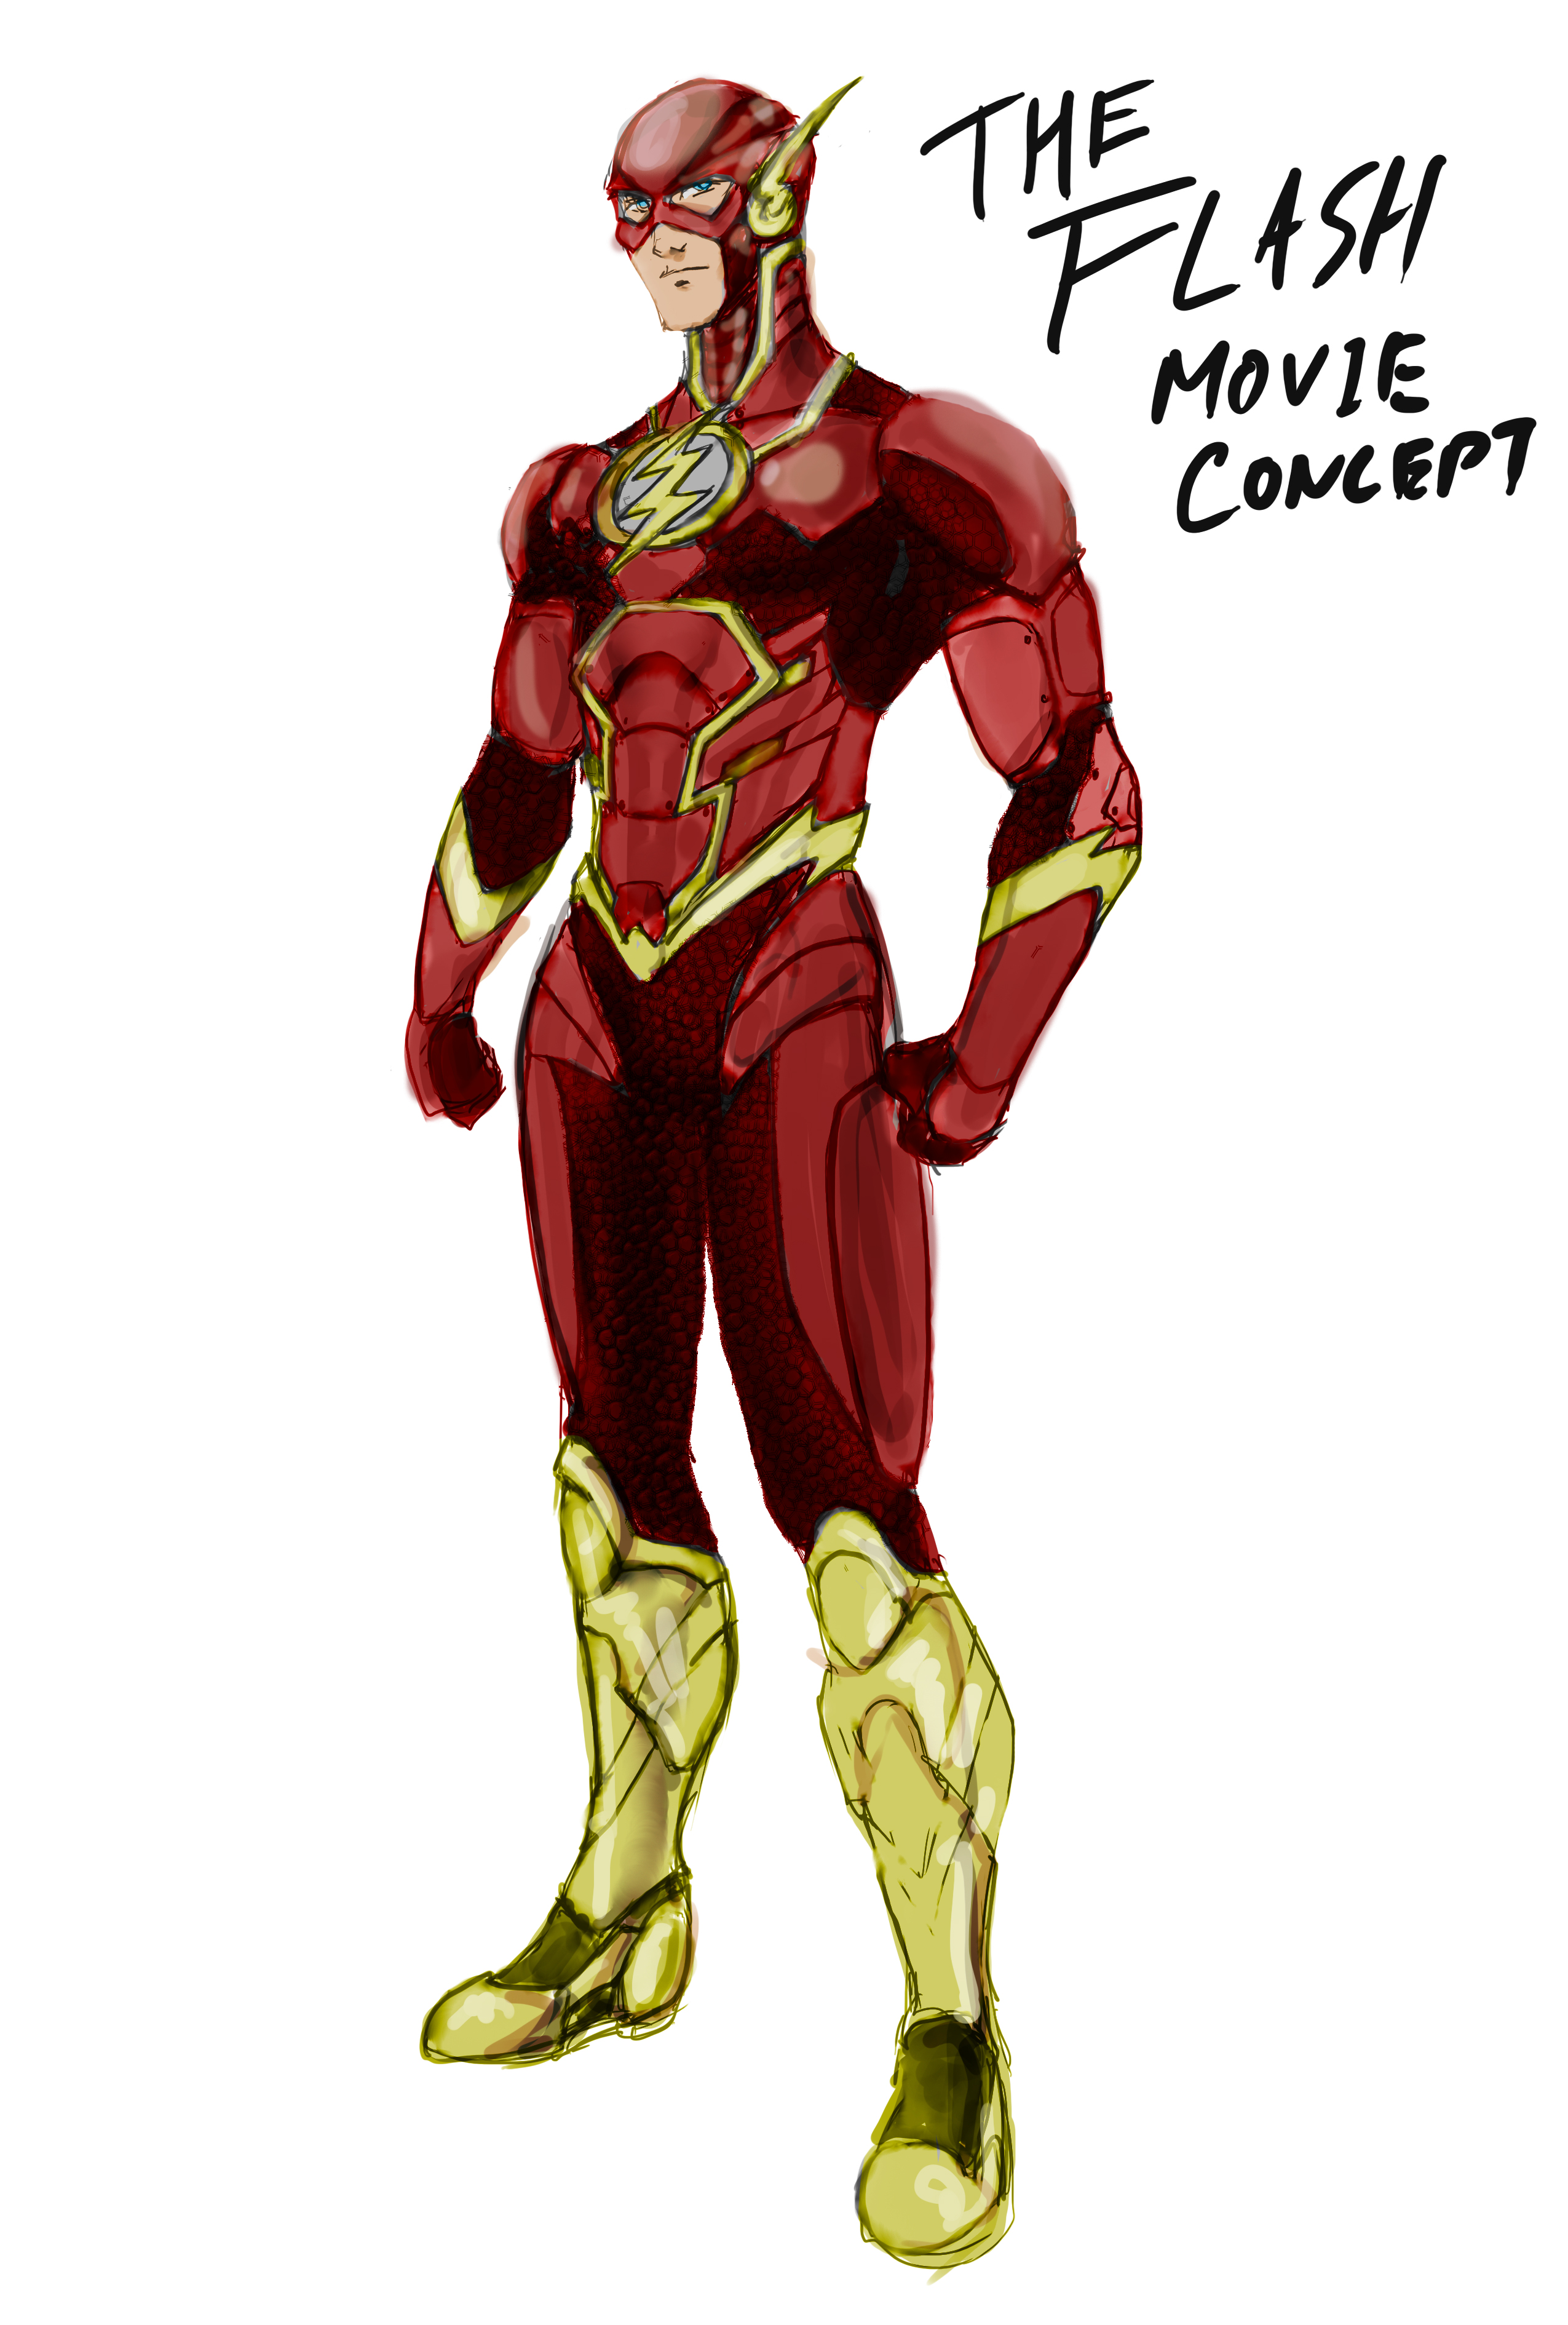 http://fc06.deviantart.net/fs71/f/2013/087/0/c/the_flash_movie_concept_design_by_randomality85-d5zkr86.jpg